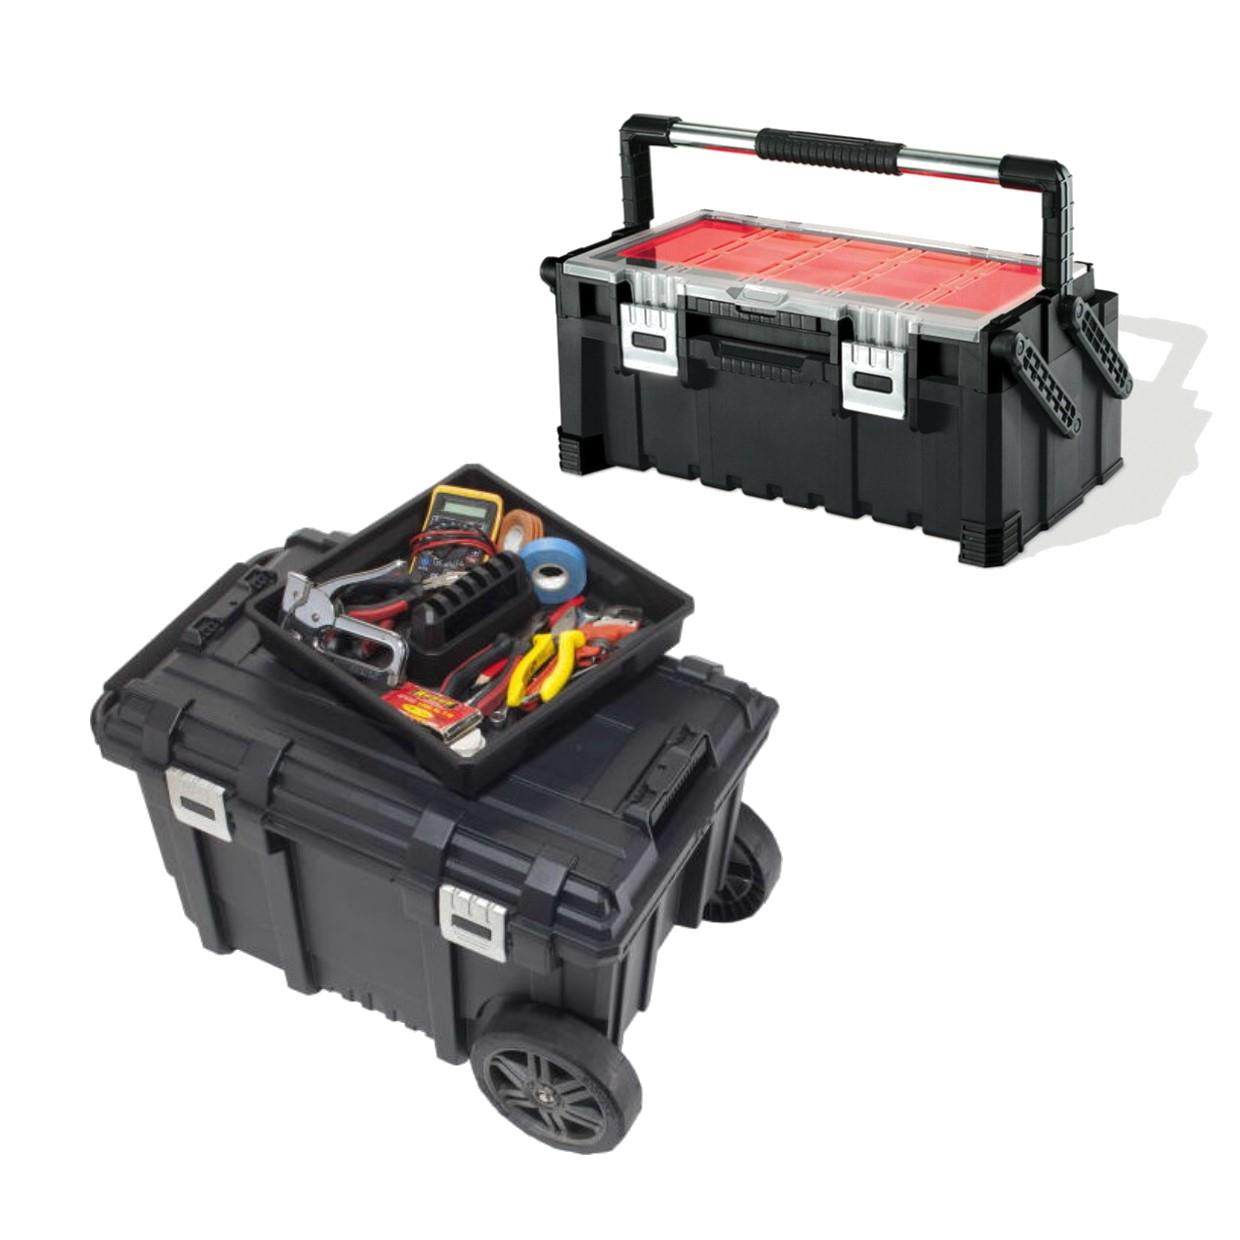 Keter Roc JOBBOX & PROCANT Kit; Consisting Of 57 Litre Wheeled Job Box Plus Connect Pro Cantilever Tool Box